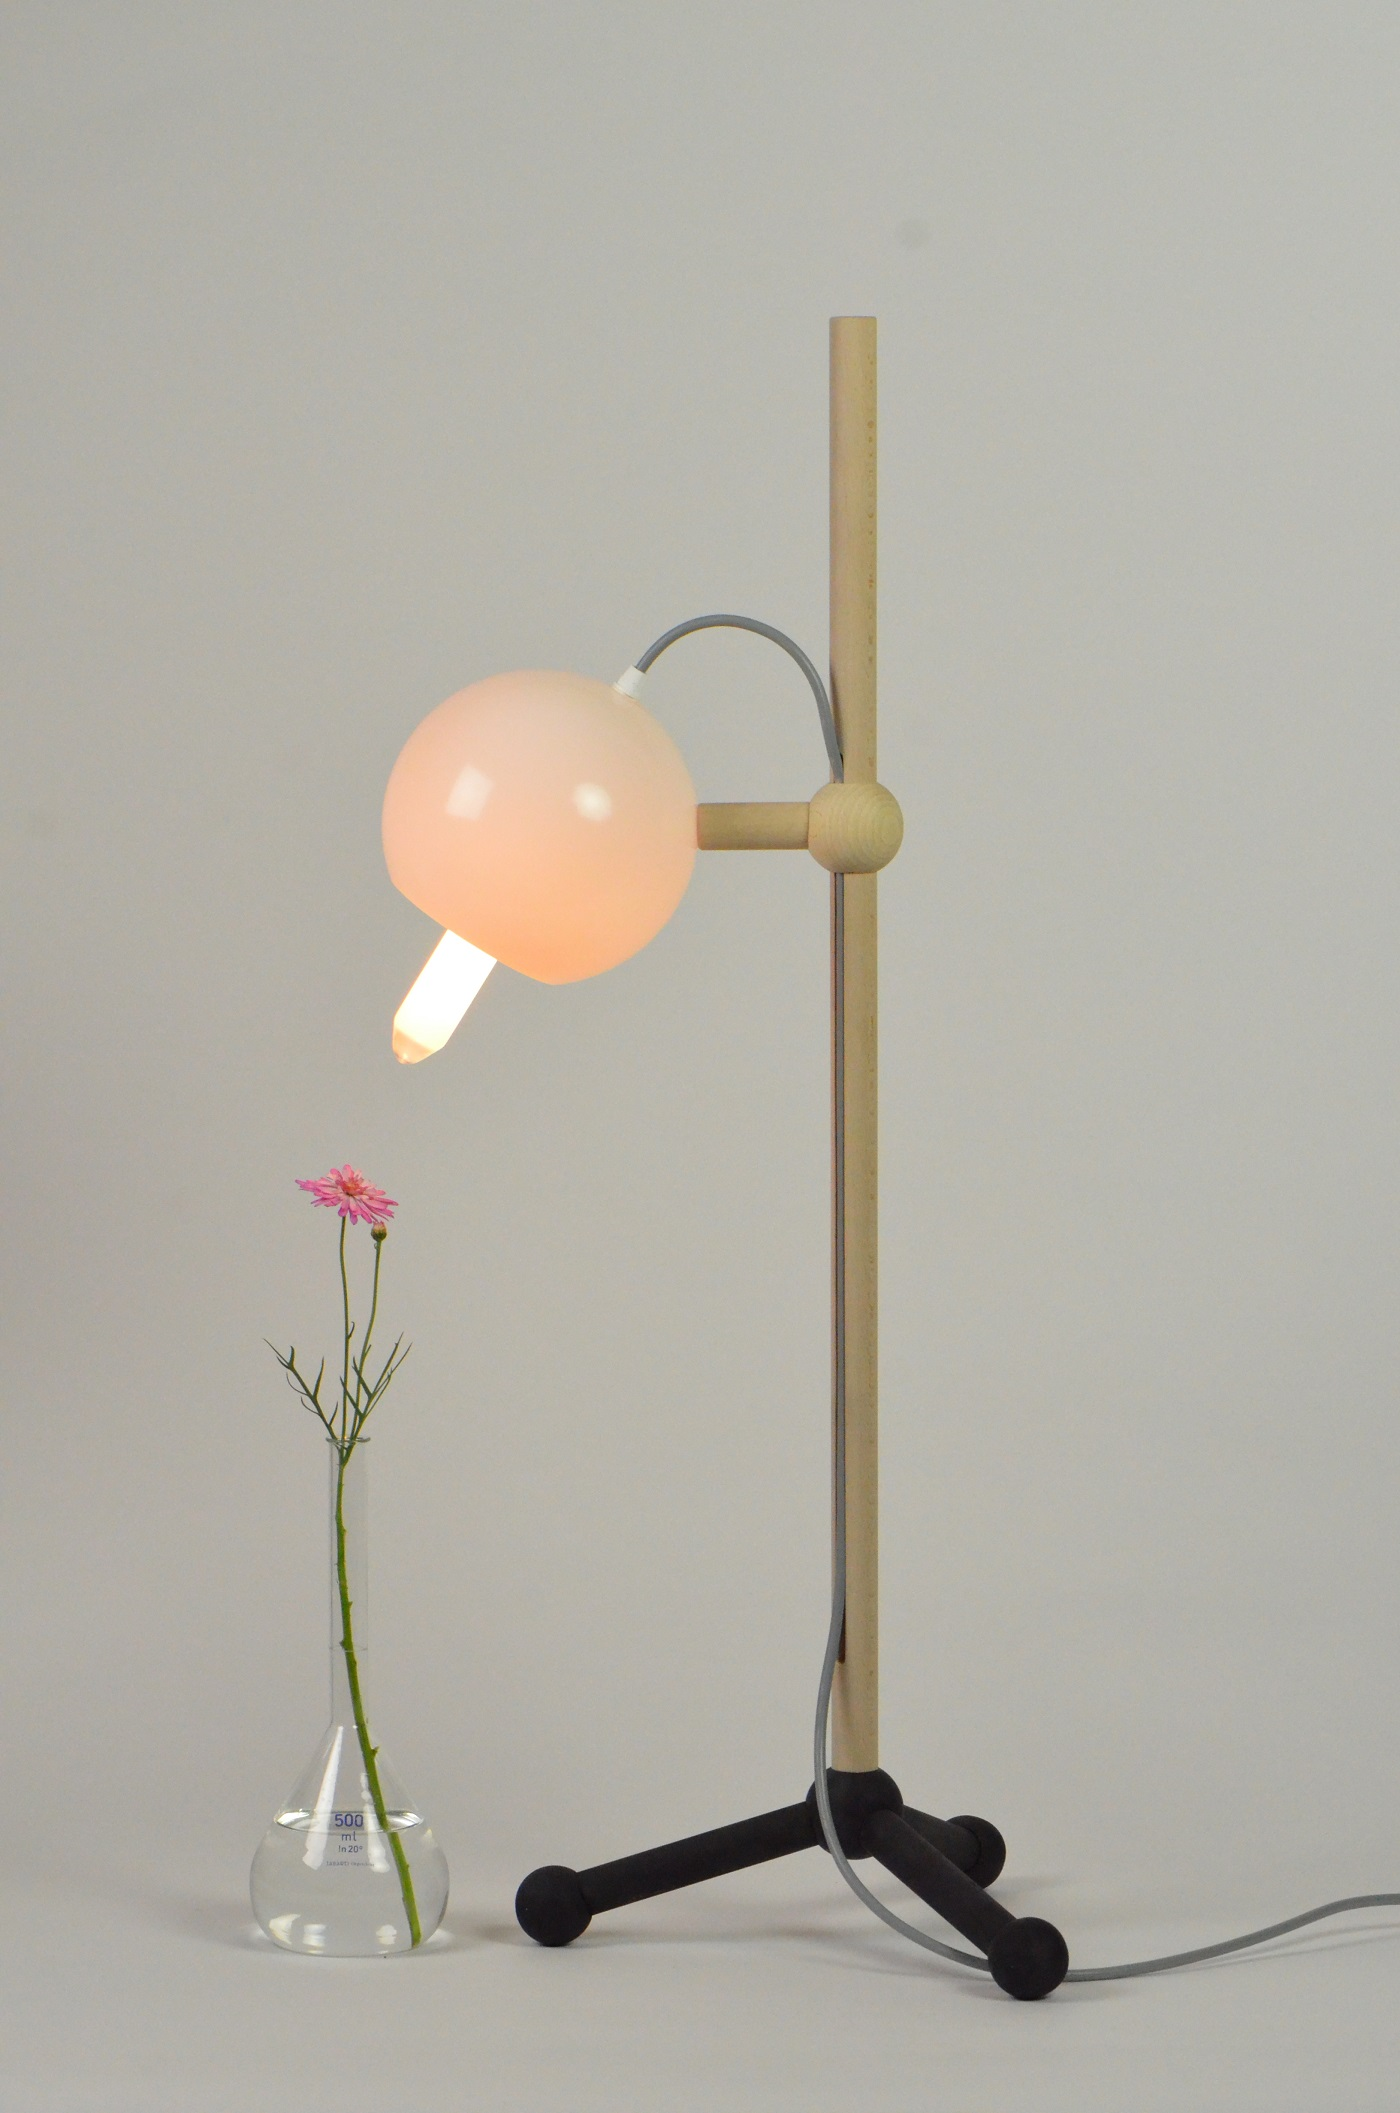 Sneak peak van tafellamp Lab Light BuroJET uit de home lab collectie in Gimmii Magazine